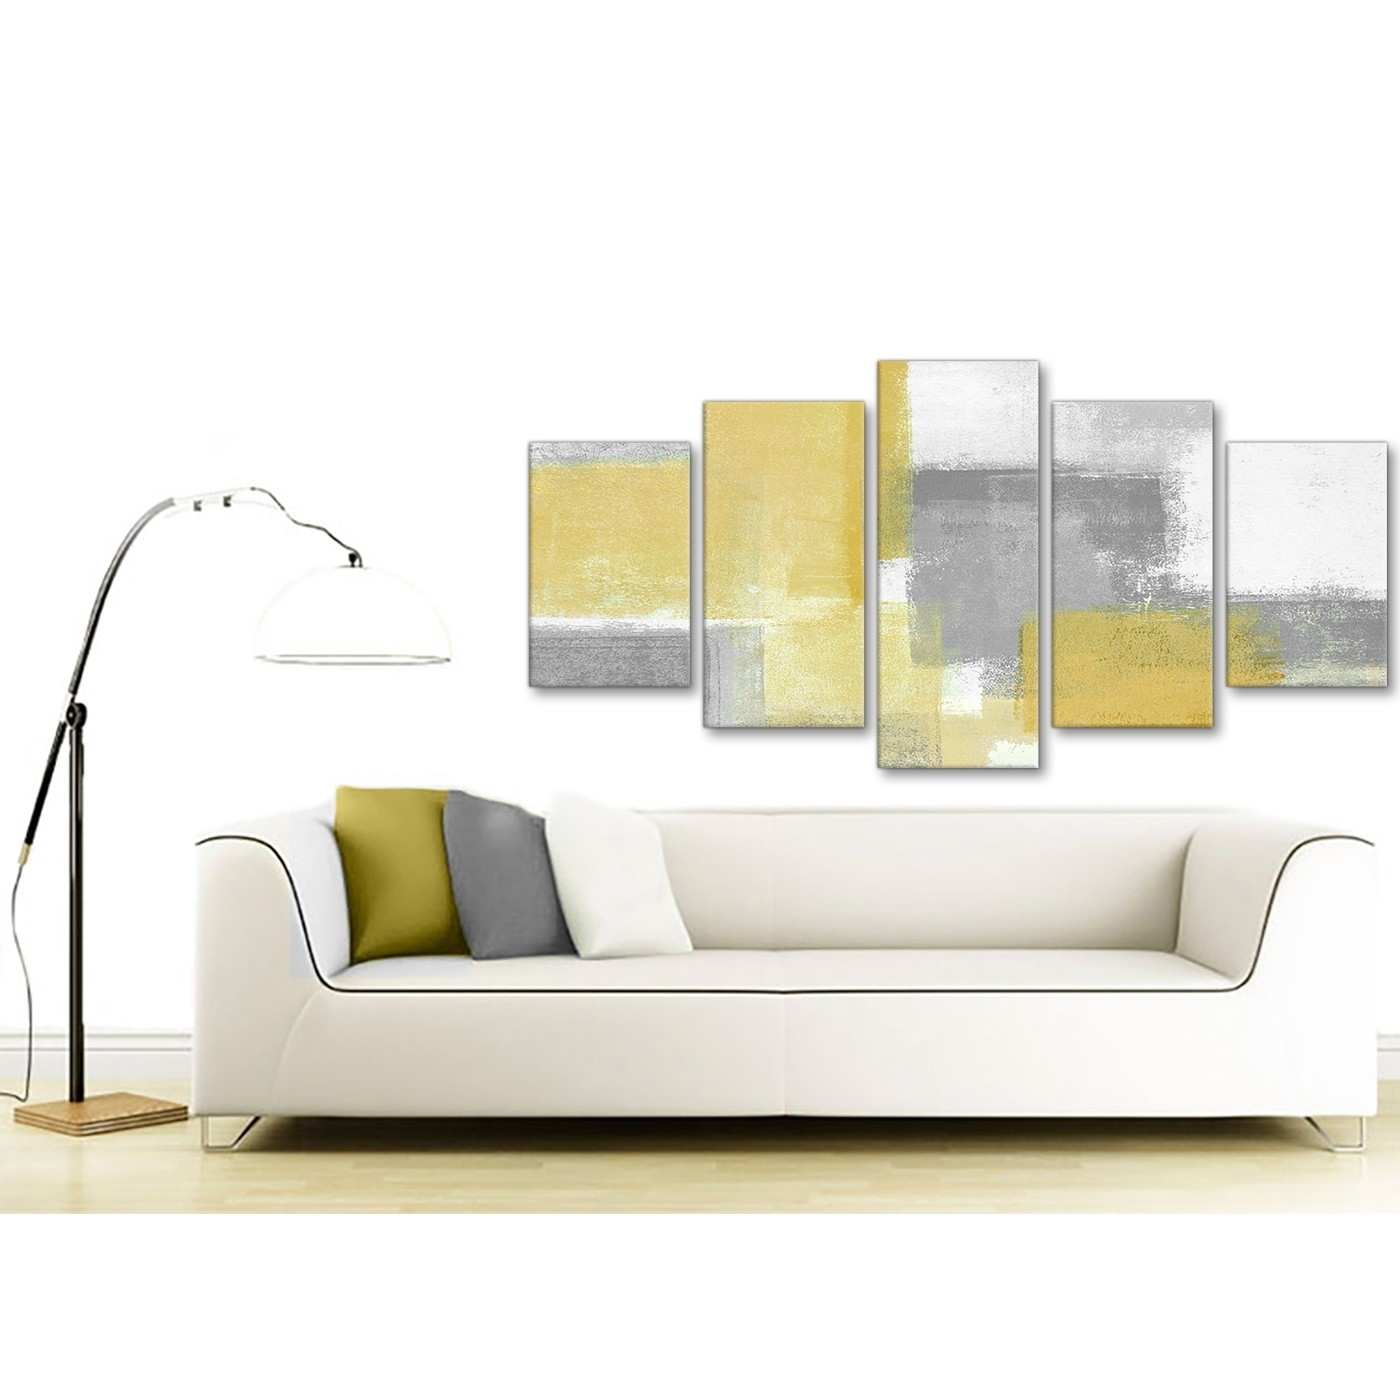 5 Piece Mustard Yellow Grey Abstract Living Room Canvas Wall Art For Recent Yellow And Grey Abstract Wall Art (View 1 of 20)